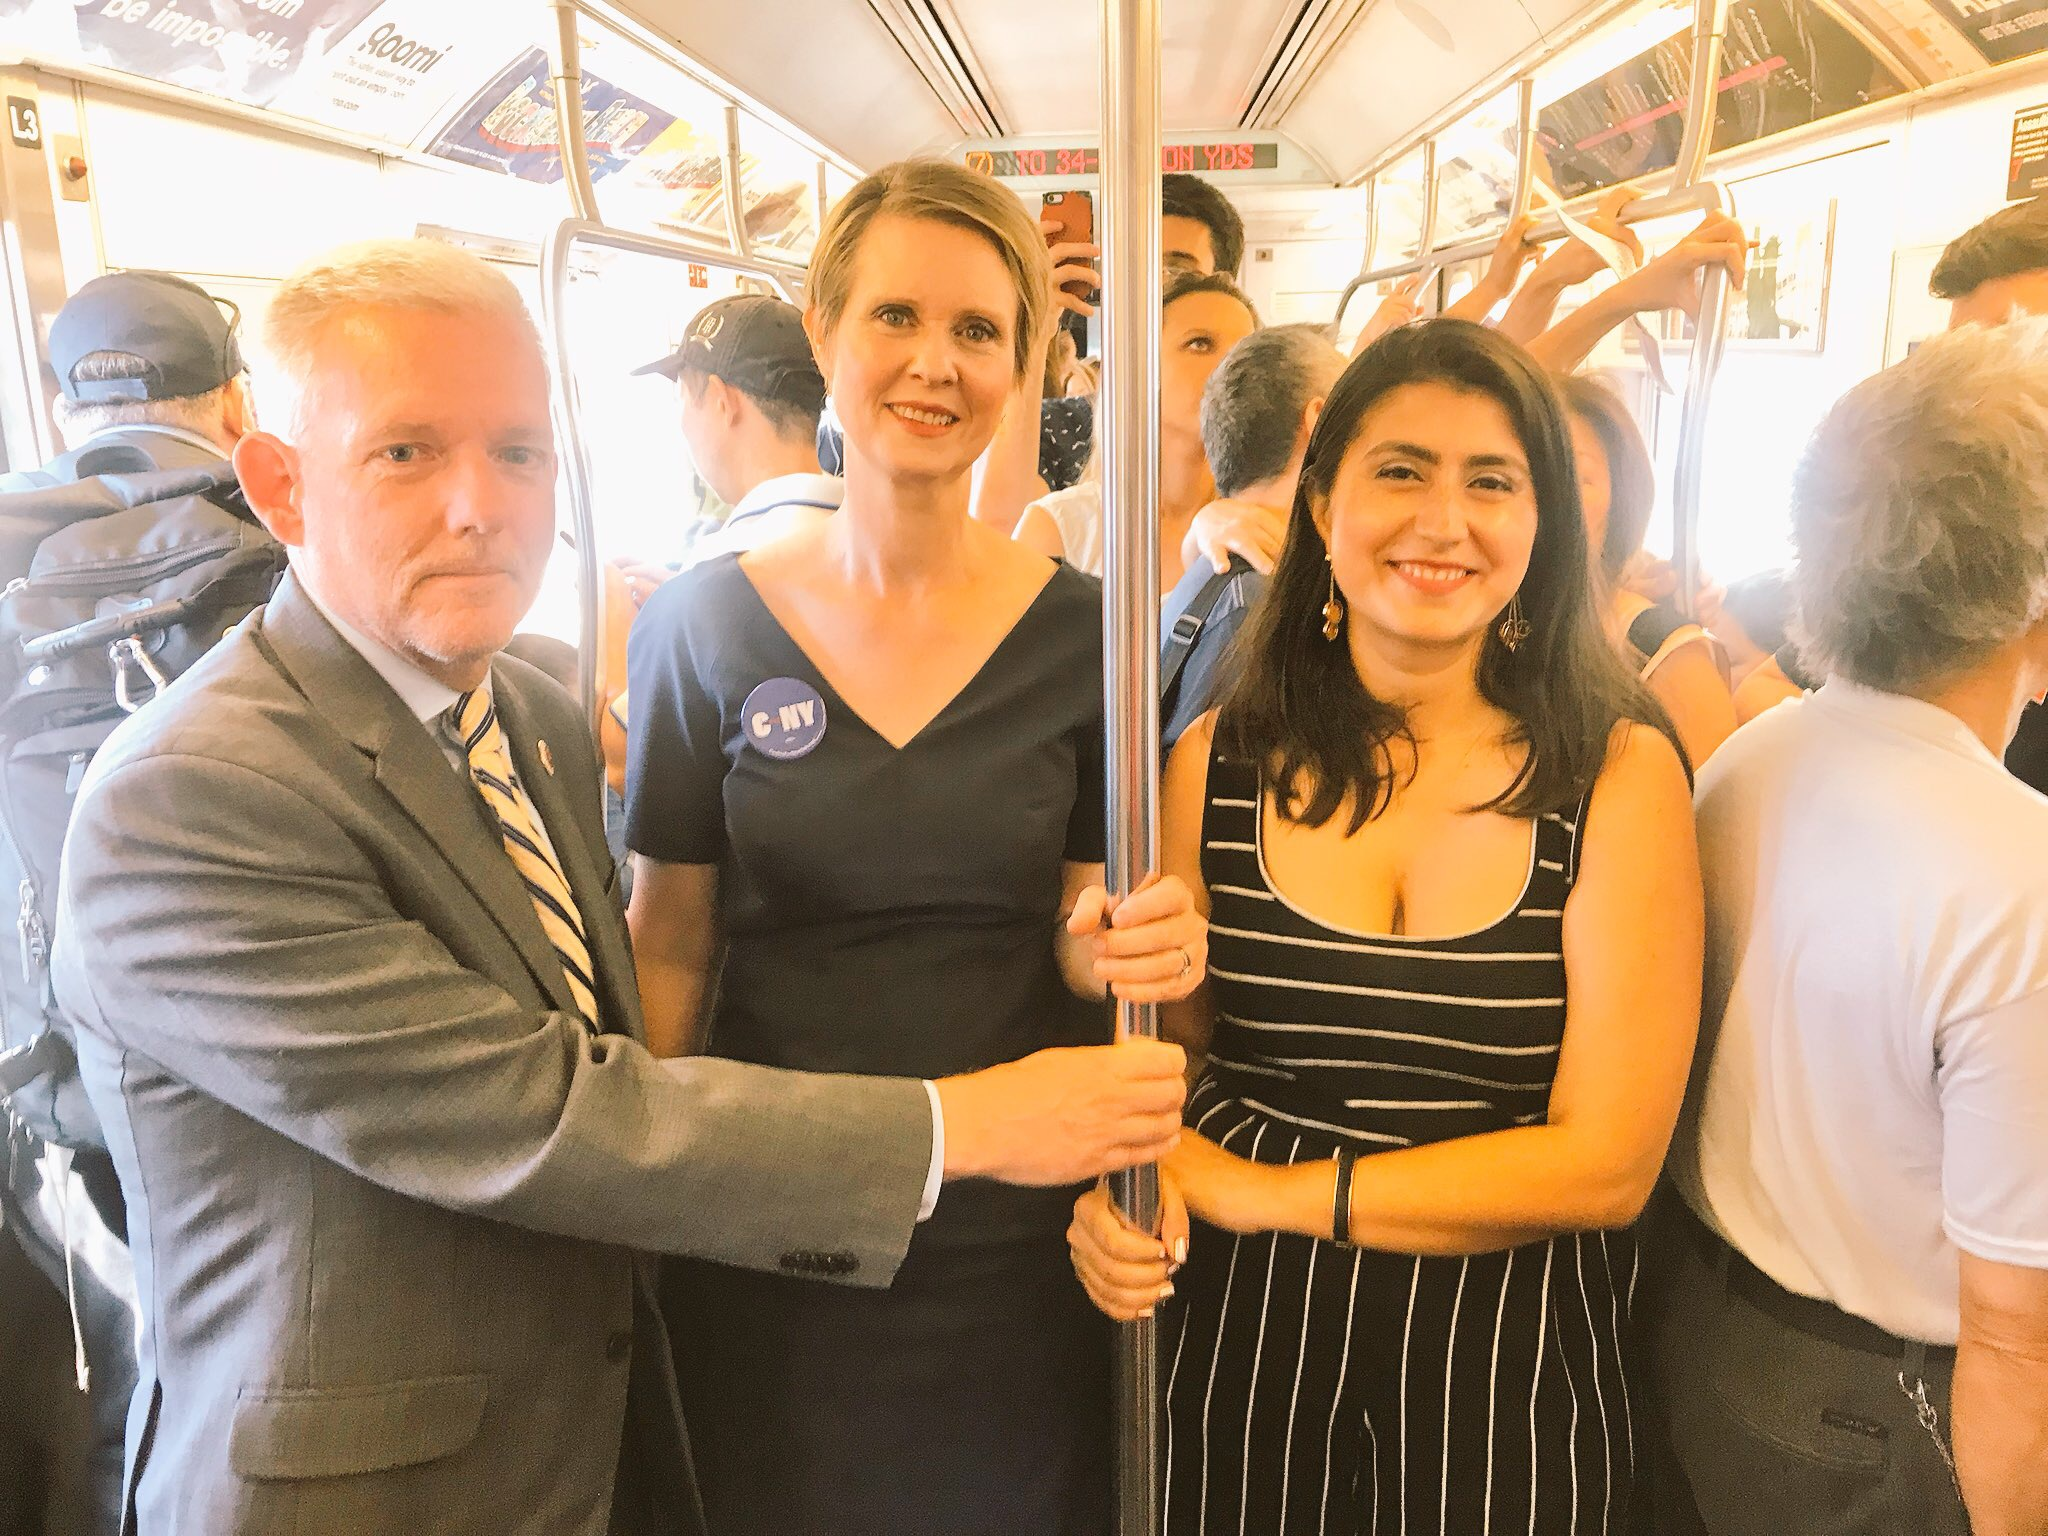 Van Bramer (left) campaigned for Cynthia Nixon (center) and Jessica Ramos (right) throughout the summer of 2018. File photo, courtesy of Jessica Ramos' campaign